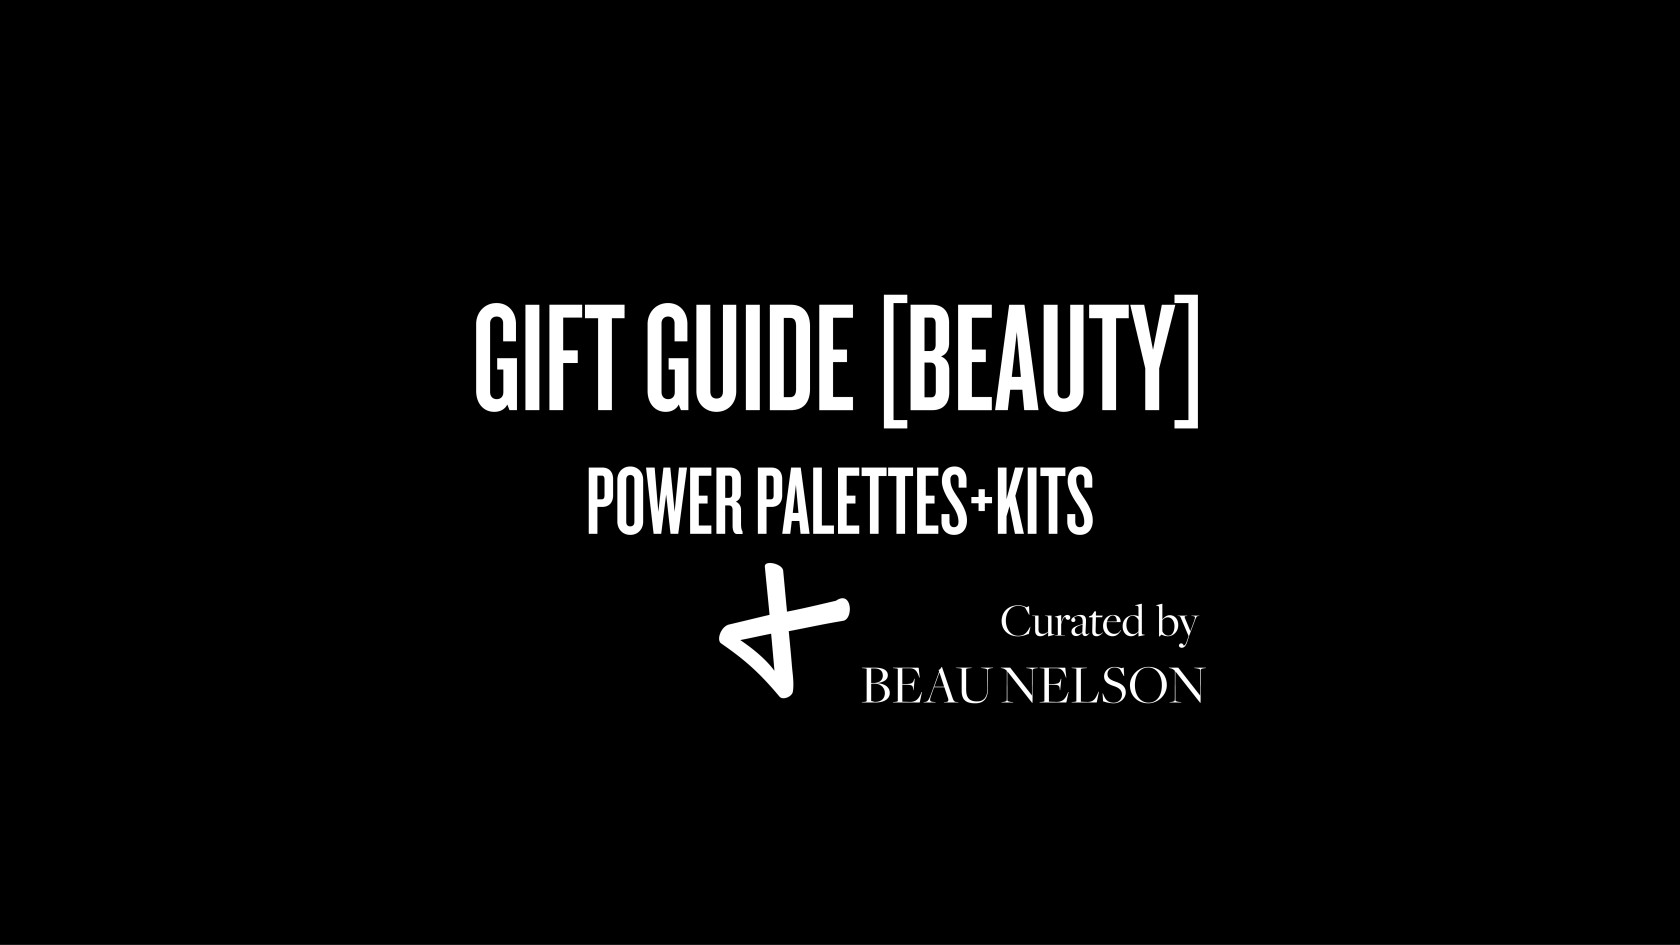 Gift guide beauty 1200x675